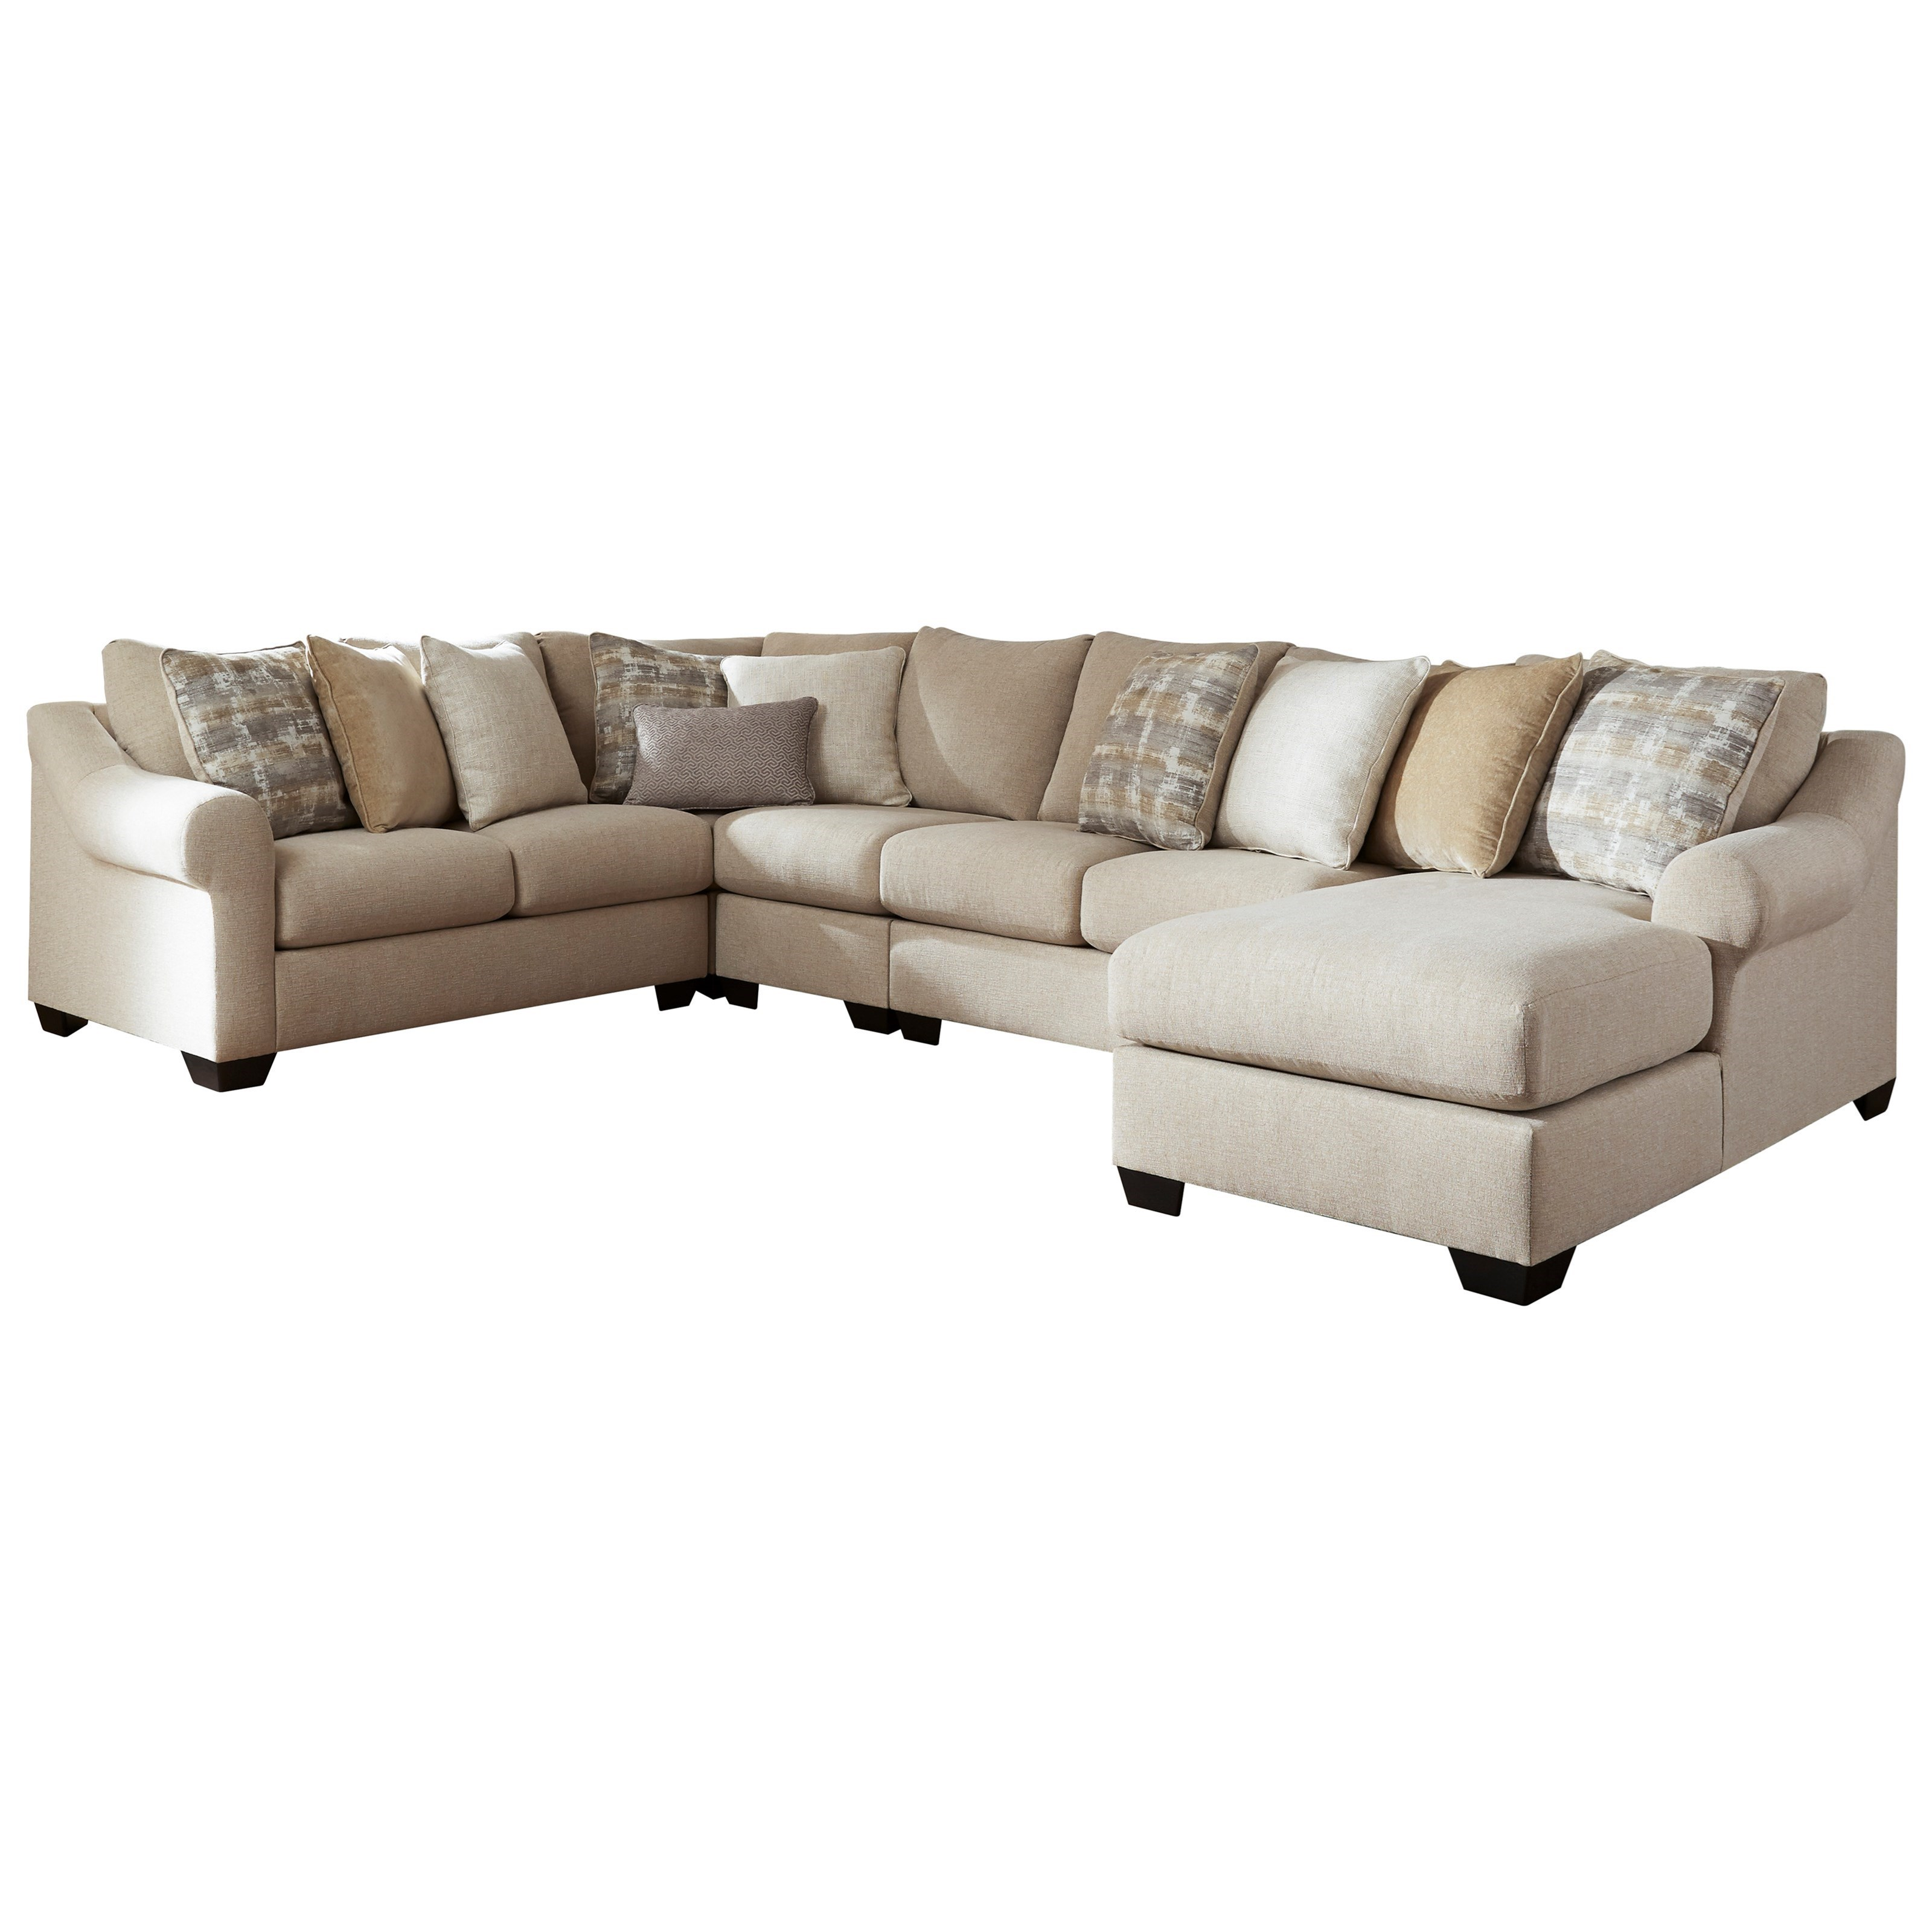 Ingleside 5-Piece Sectional with Chaise by Benchcraft at Walker's Furniture